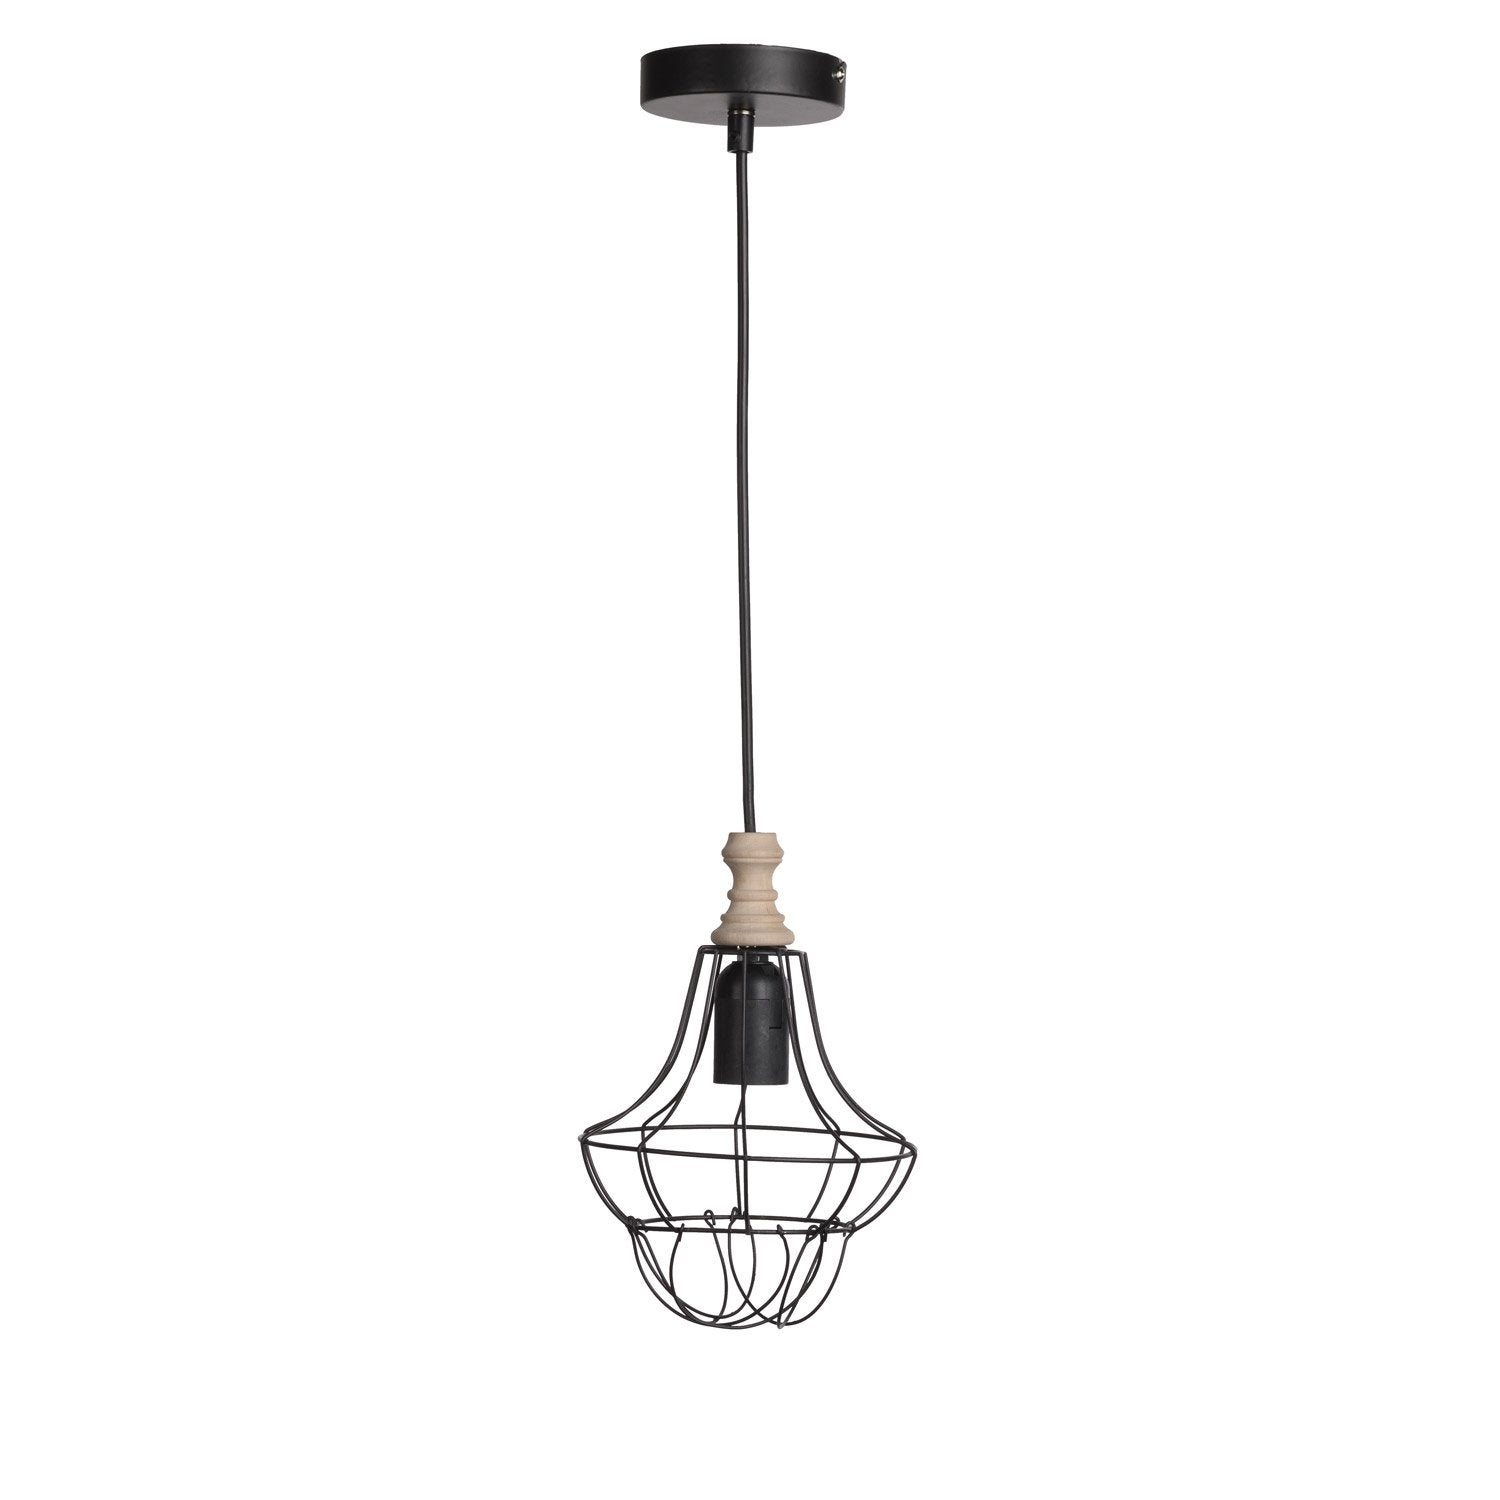 Suspension, e27 design Balade métal noir 1 x 60 W MATHIAS